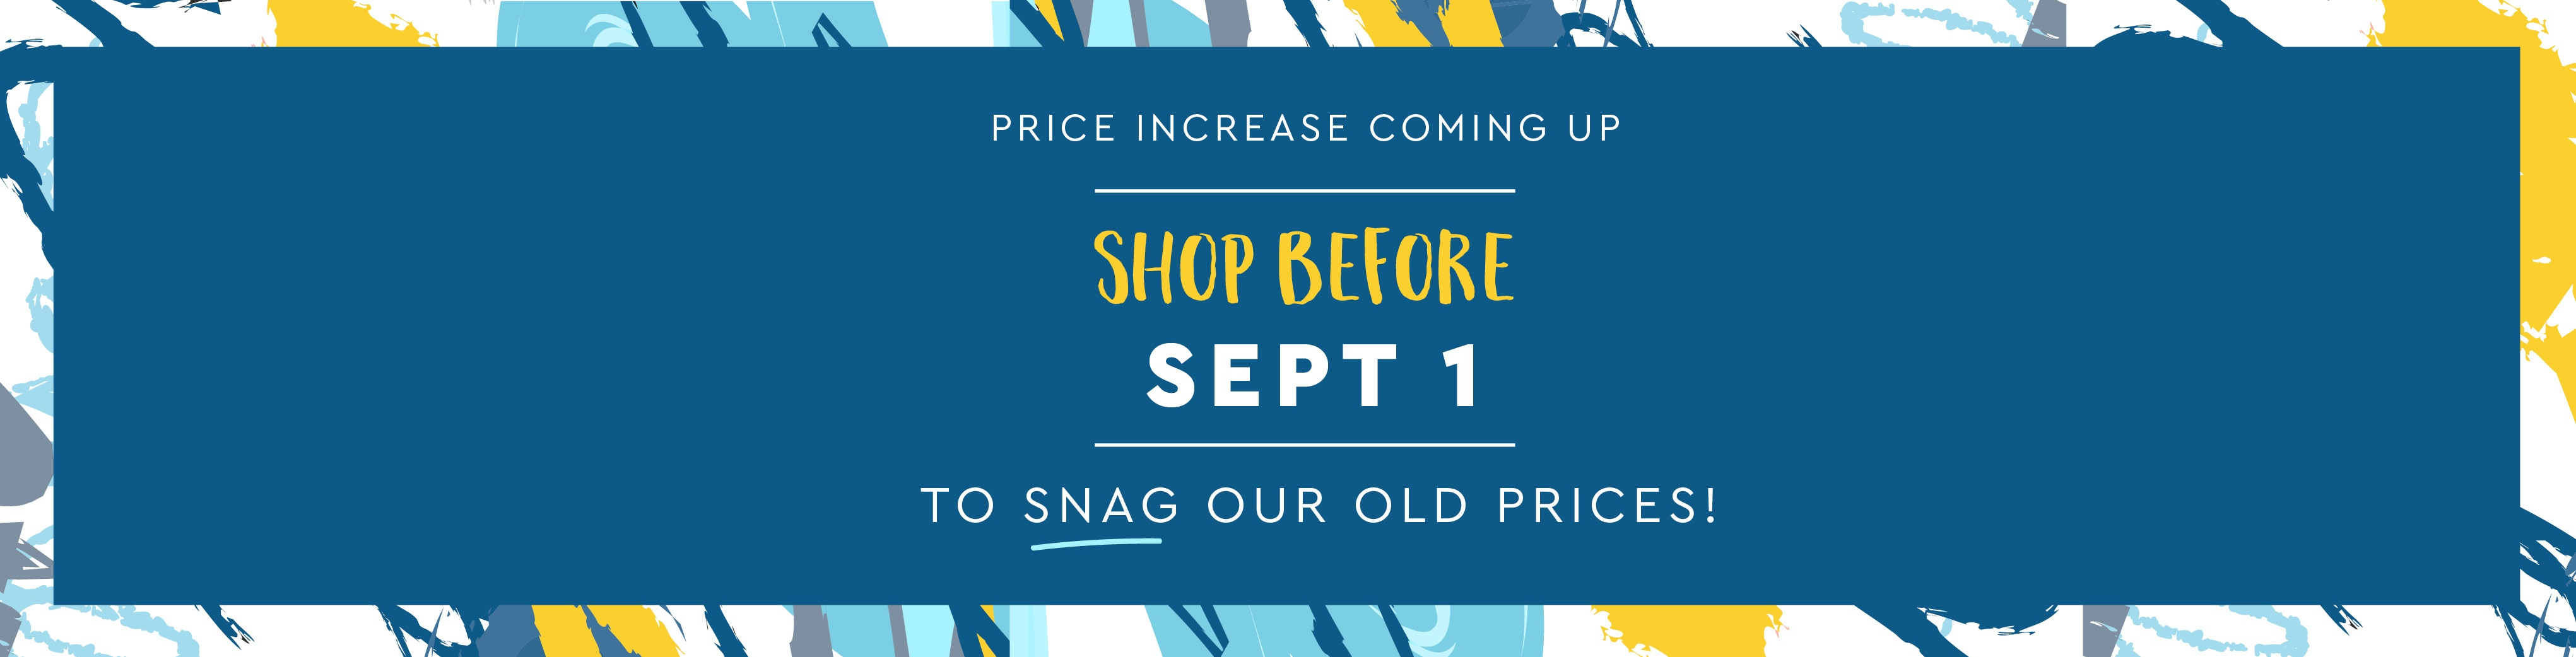 Price increase ahead! Shop now to sang our old prices!